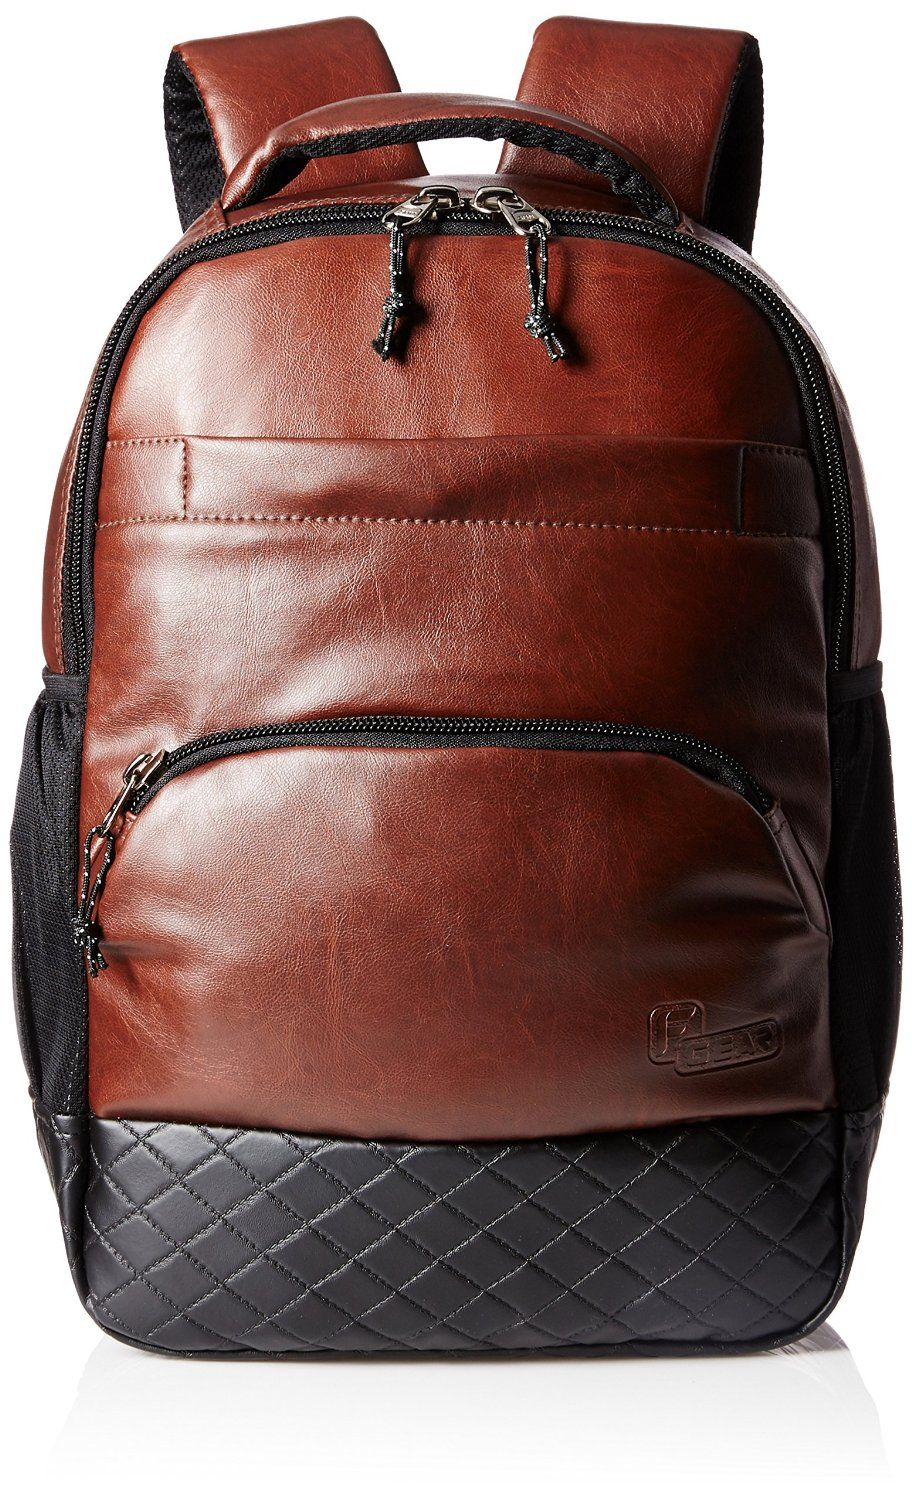 Leather Laptop Bag Online India- Fenix Toulouse Handball a472411f58173